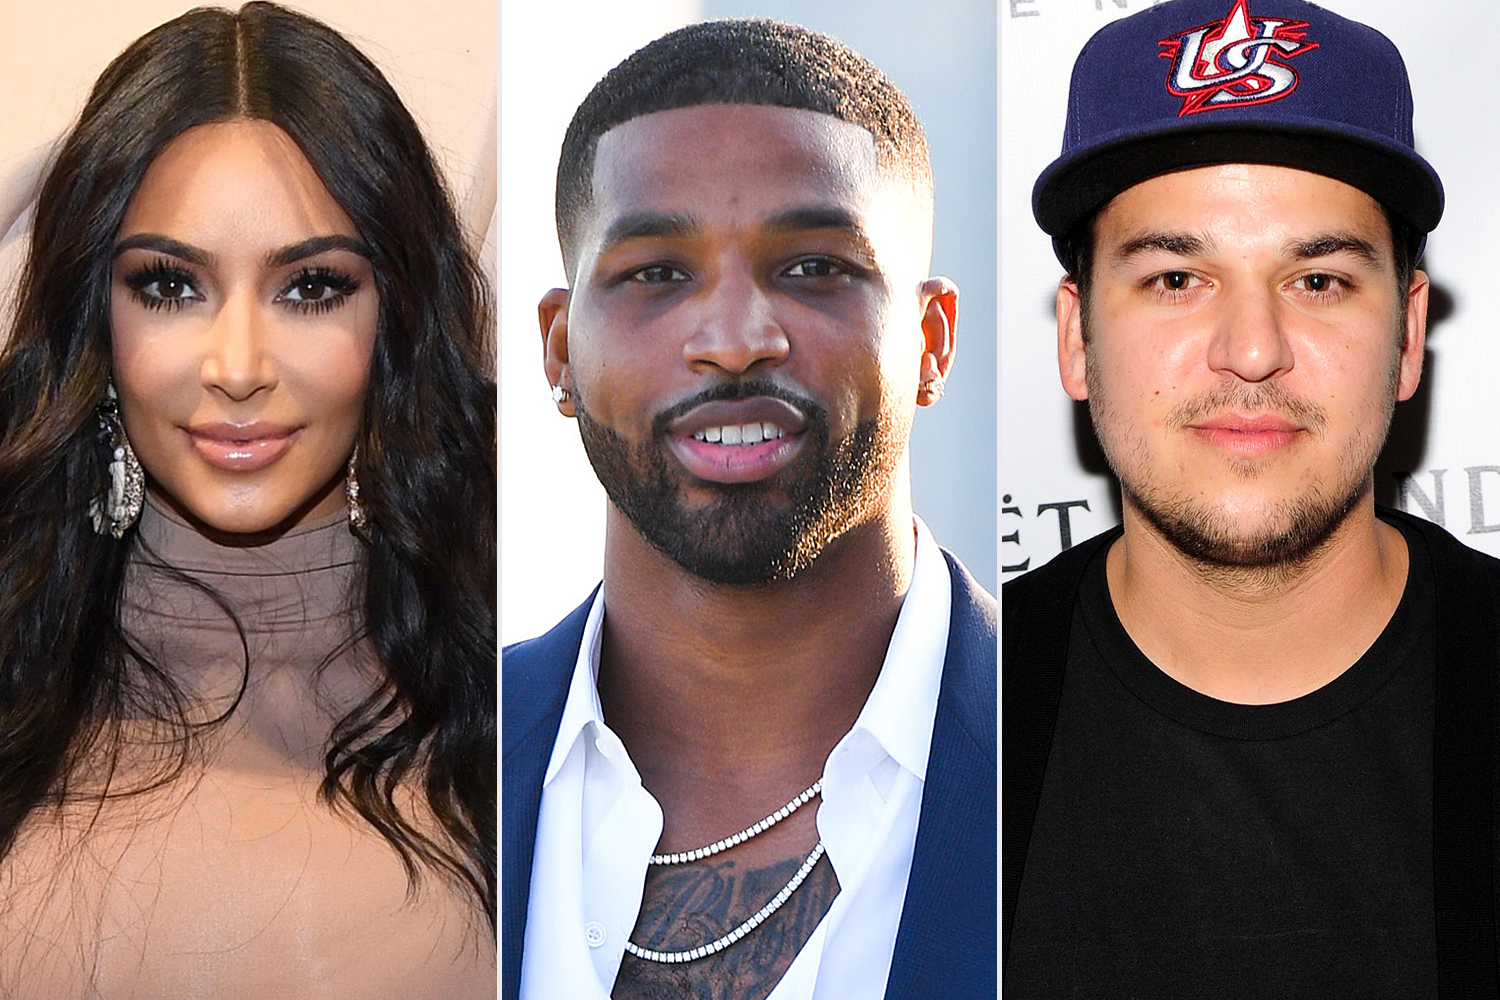 Kim Kardashian West; Tristan Thompson; Rob Kardashian